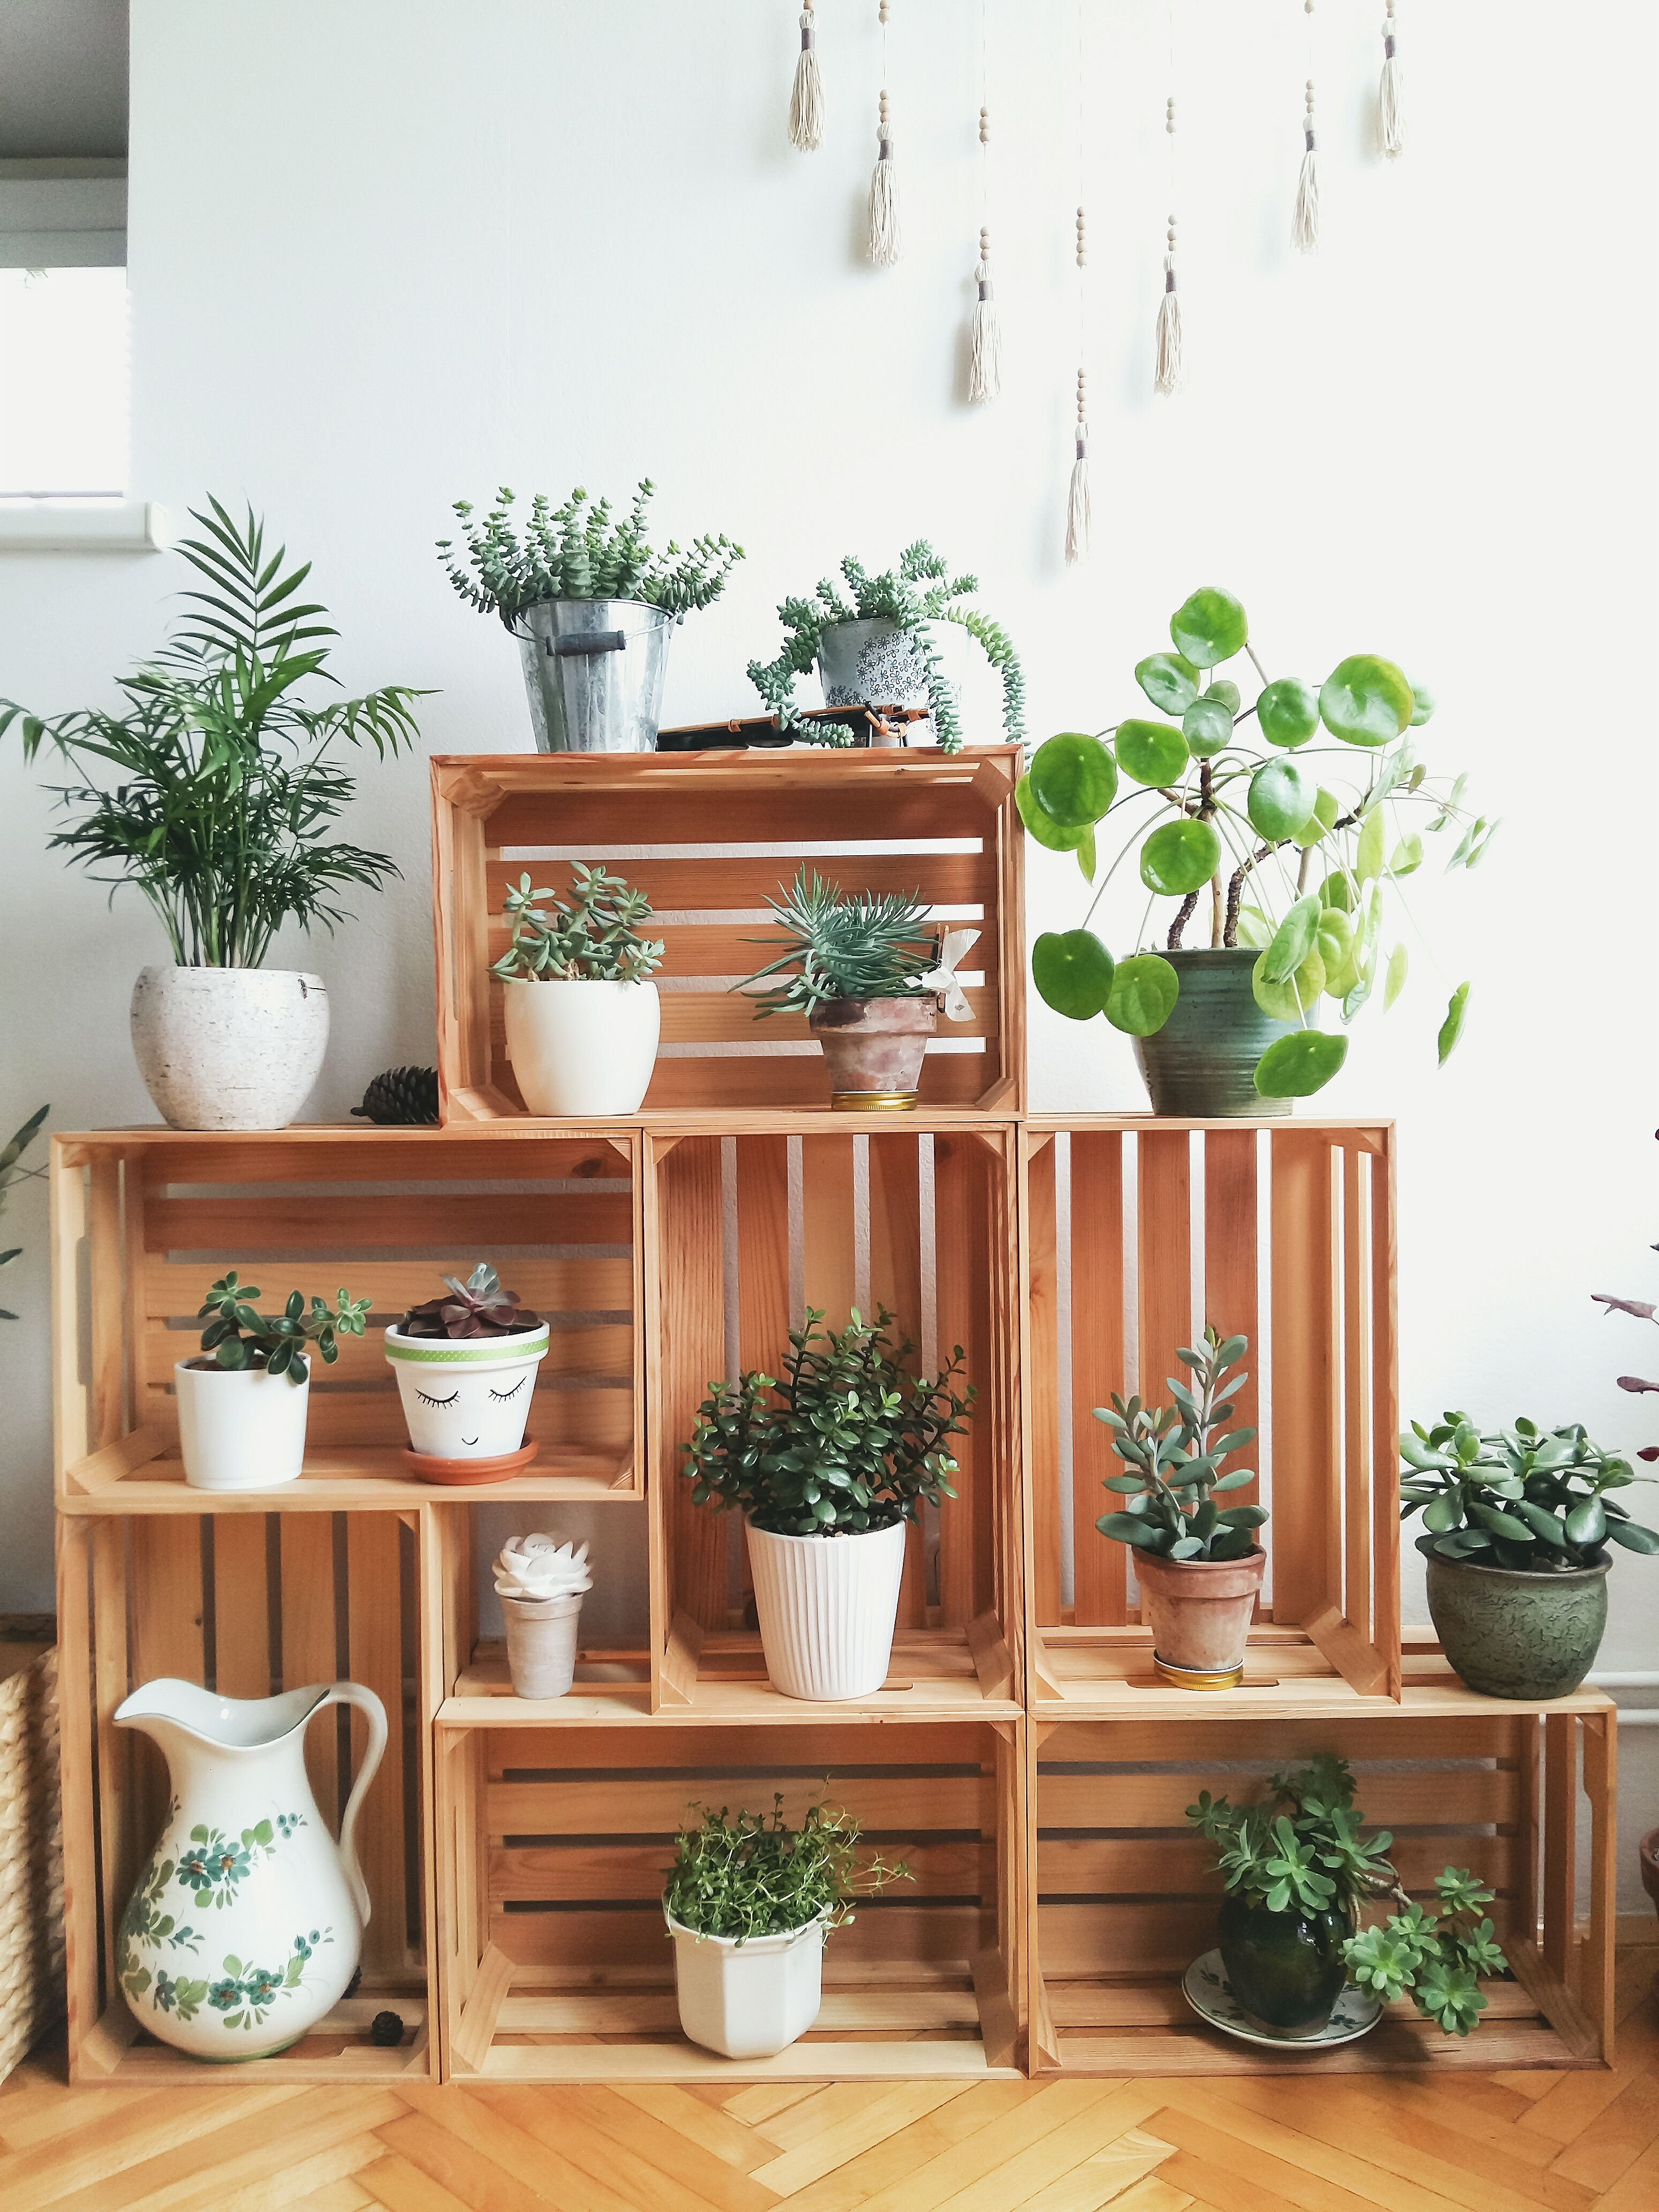 Build Plant Stand 24 43 Diy Plant Stand Ideas To Fill Your Home With Greenery